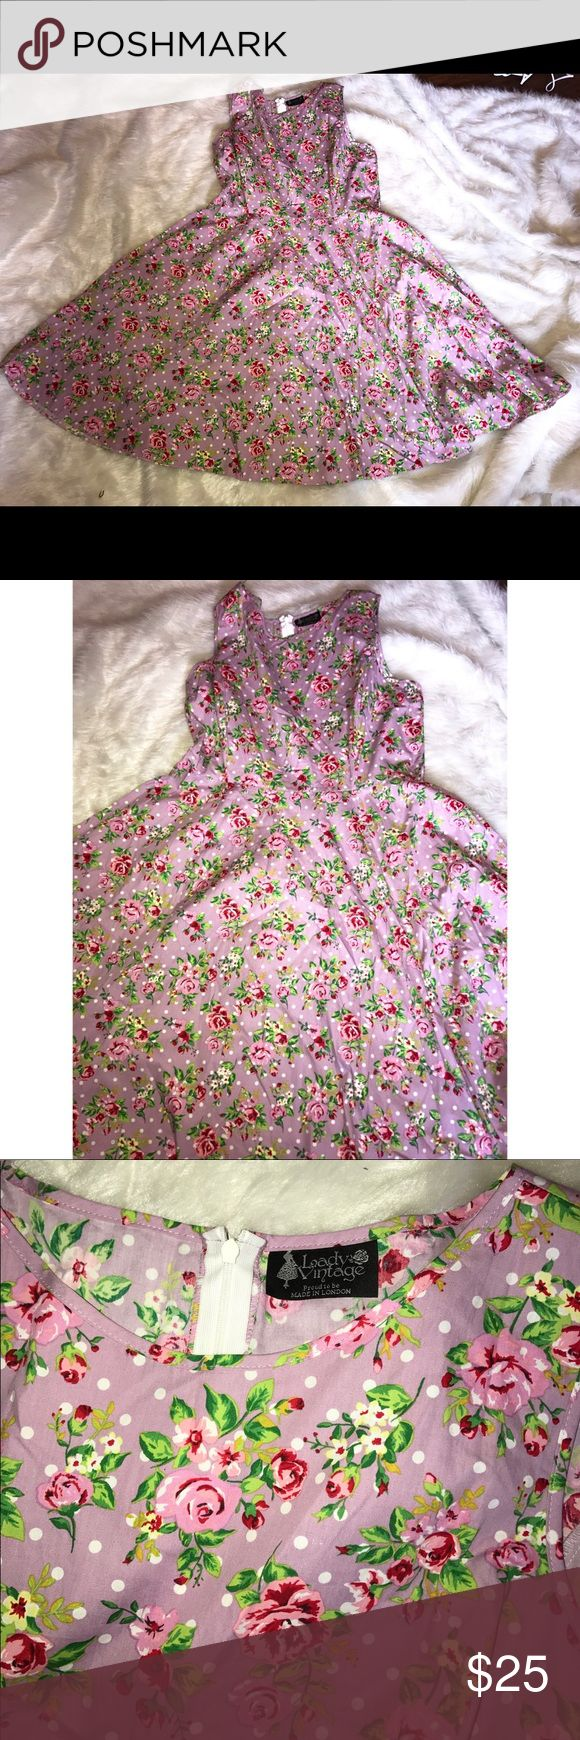 Lady vintage plus pinup rockabilly dress 20 Adorable pinup retro pinup dress. So cute! Excellent pre owned condition size 20. Lightweight in lavender with pink and red floral. No belt with this dress but does have loops. lady vintage Dresses